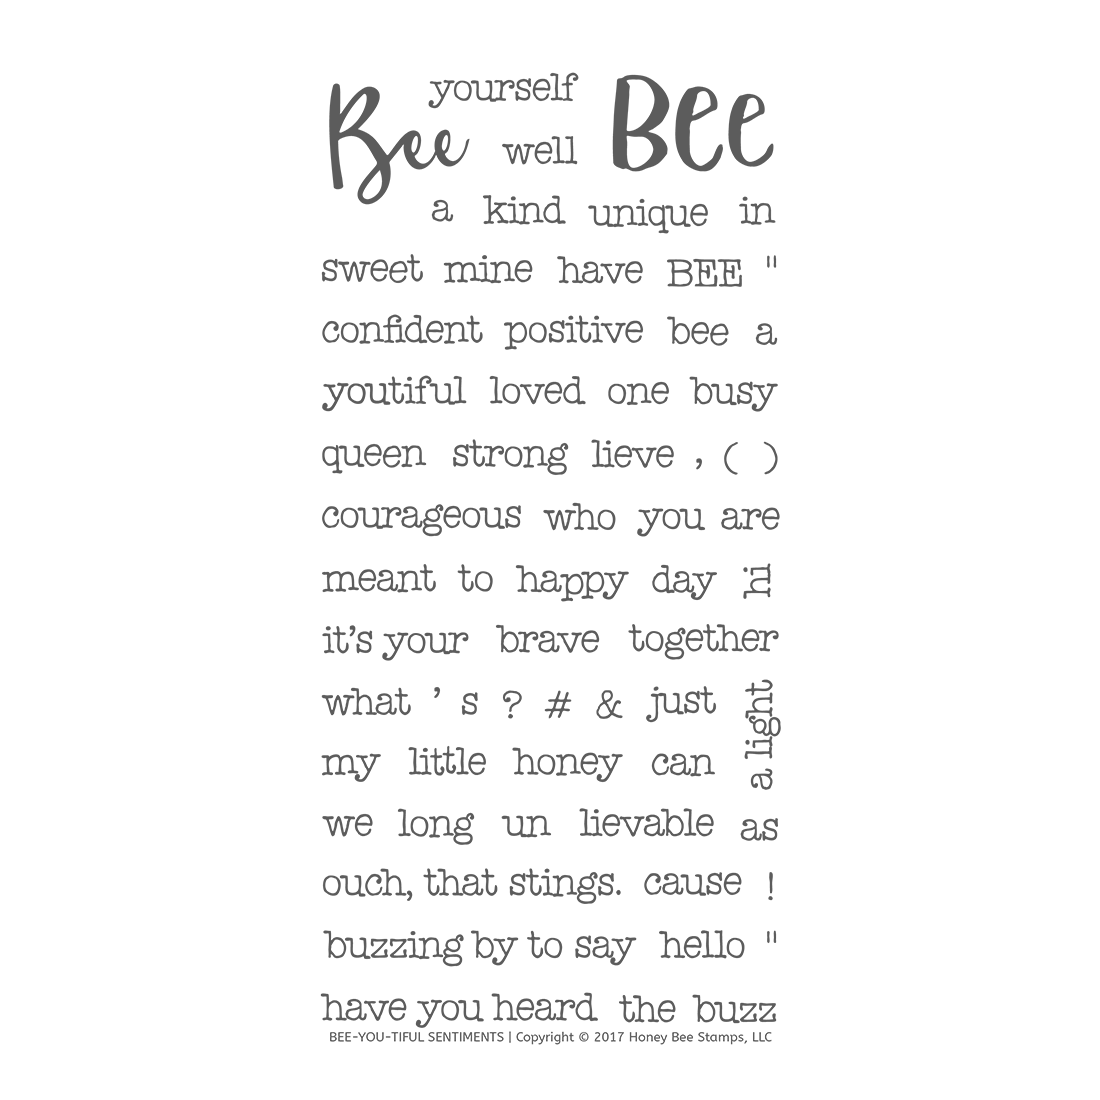 Honeybee Bee Stamps - Bee-You-Tiful Sentiments | 4x8 Stamp Set